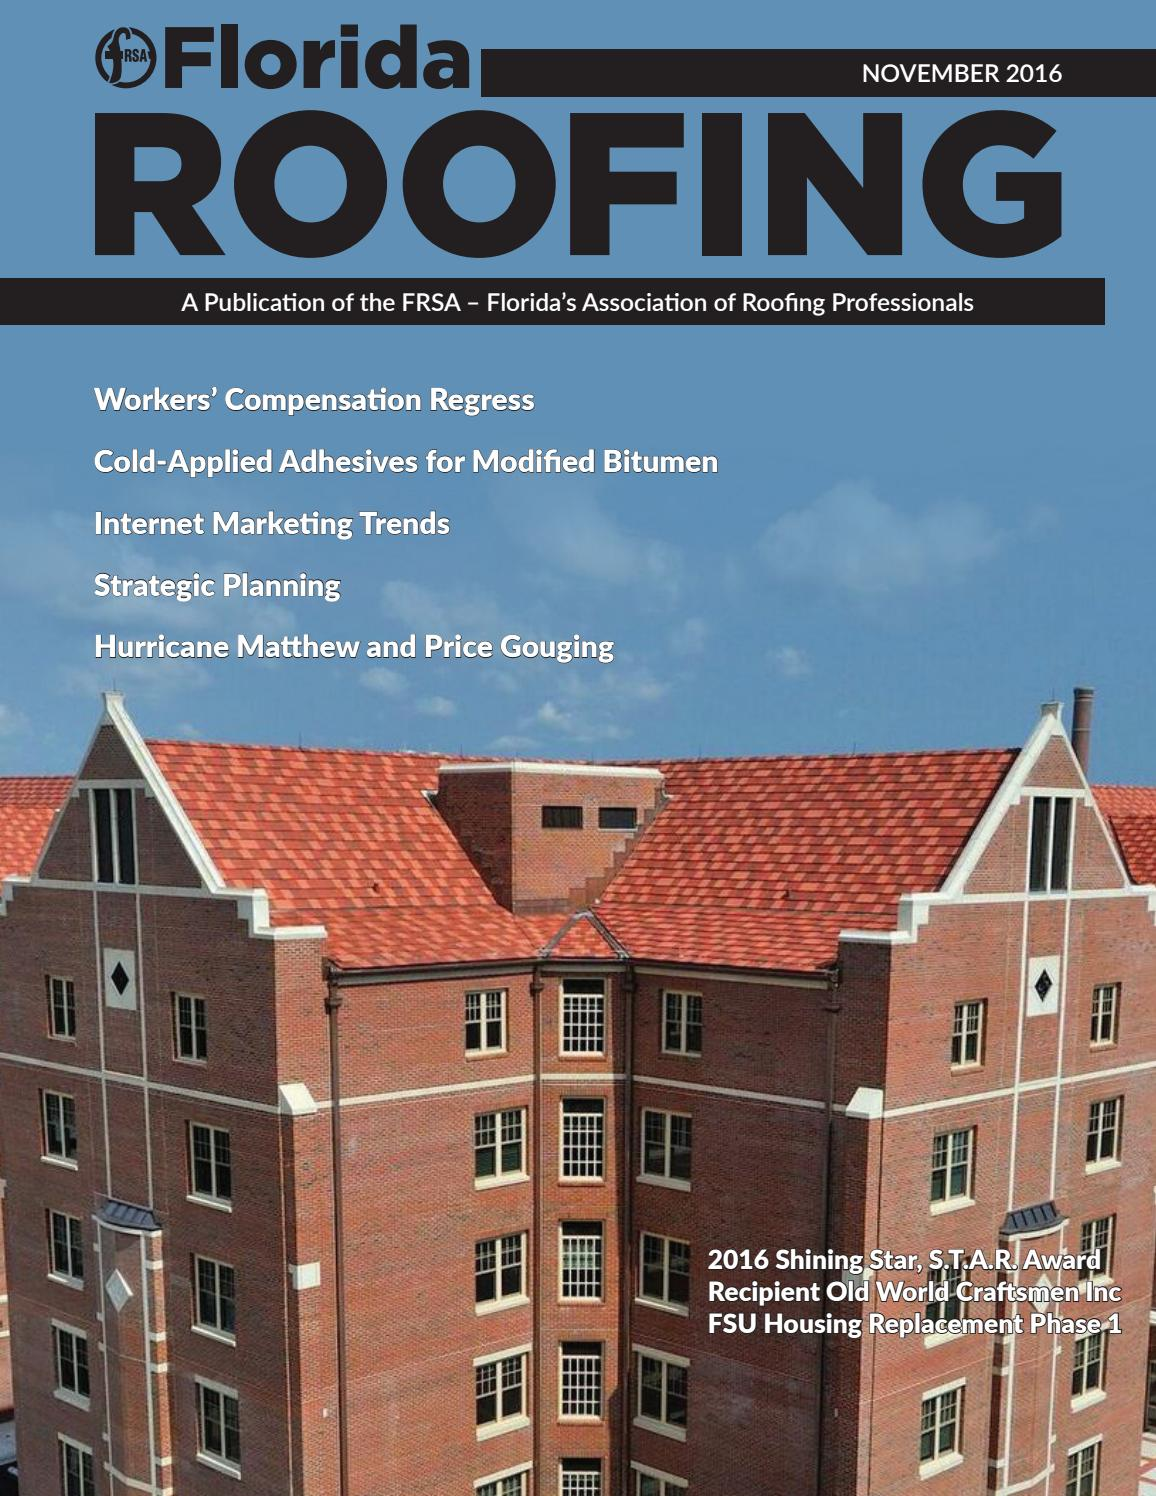 Florida Roofing Magazine - November 2016 by Florida Roofing